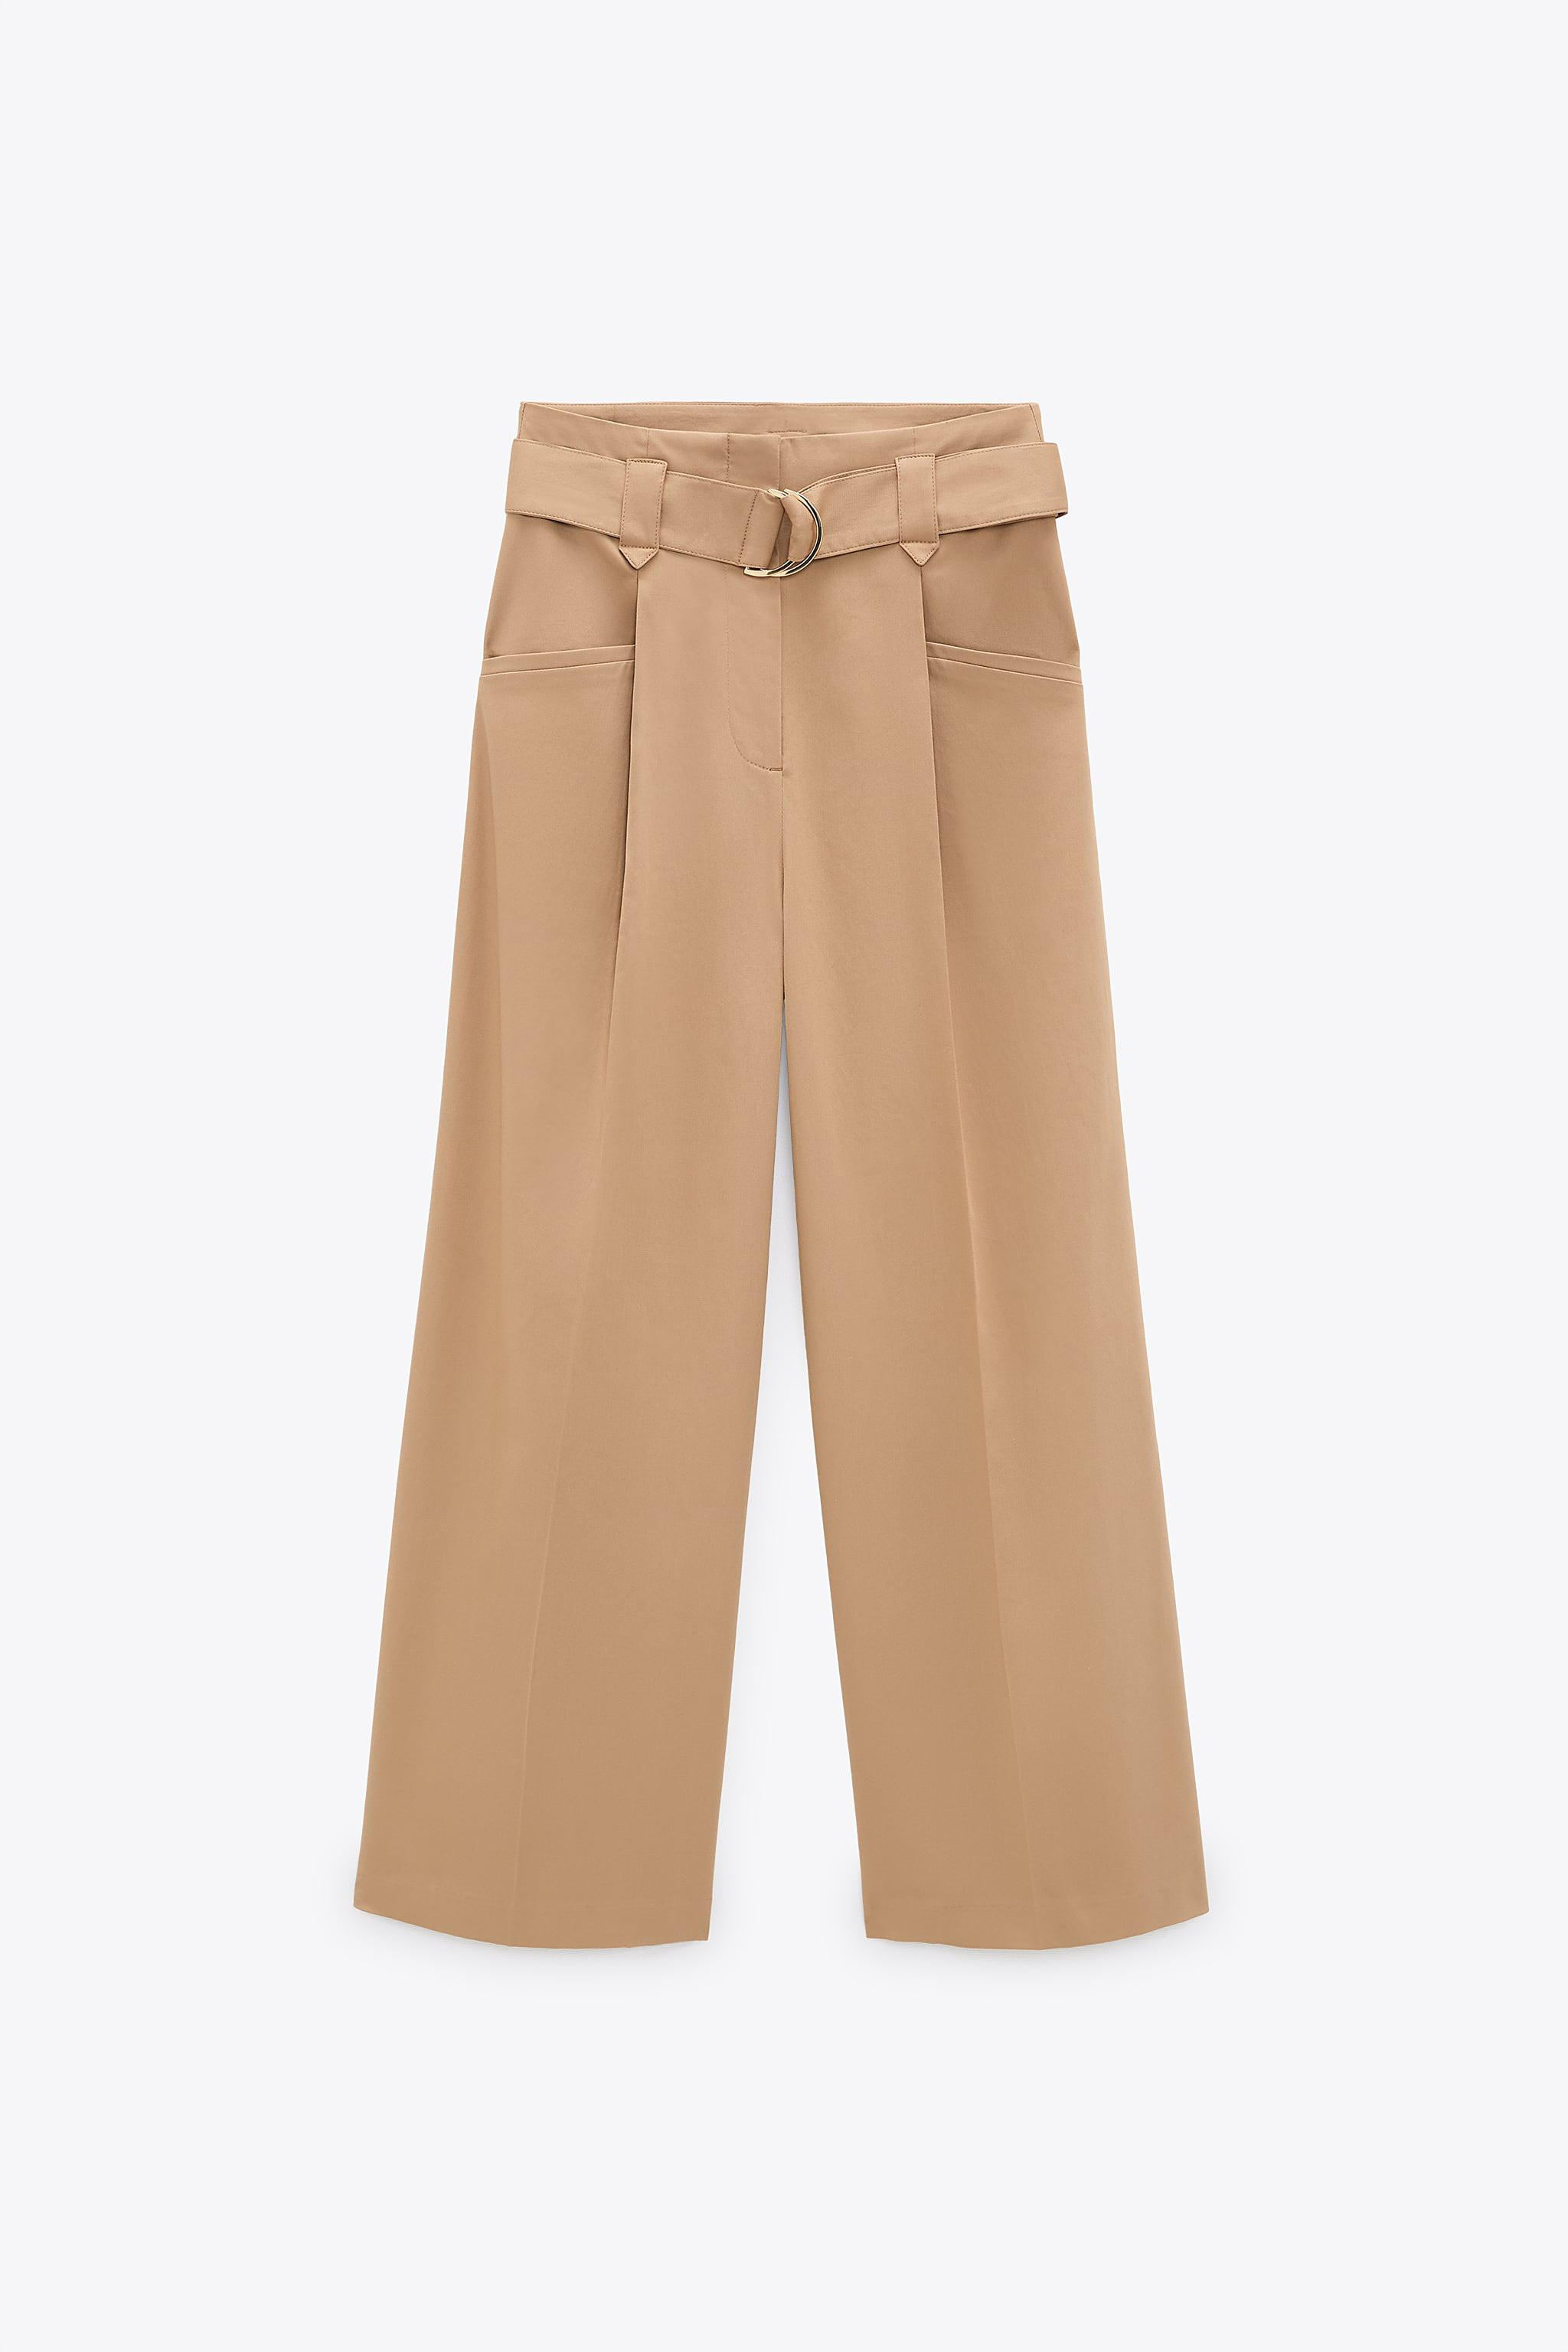 WIDE LEG BELTED PANTS 6